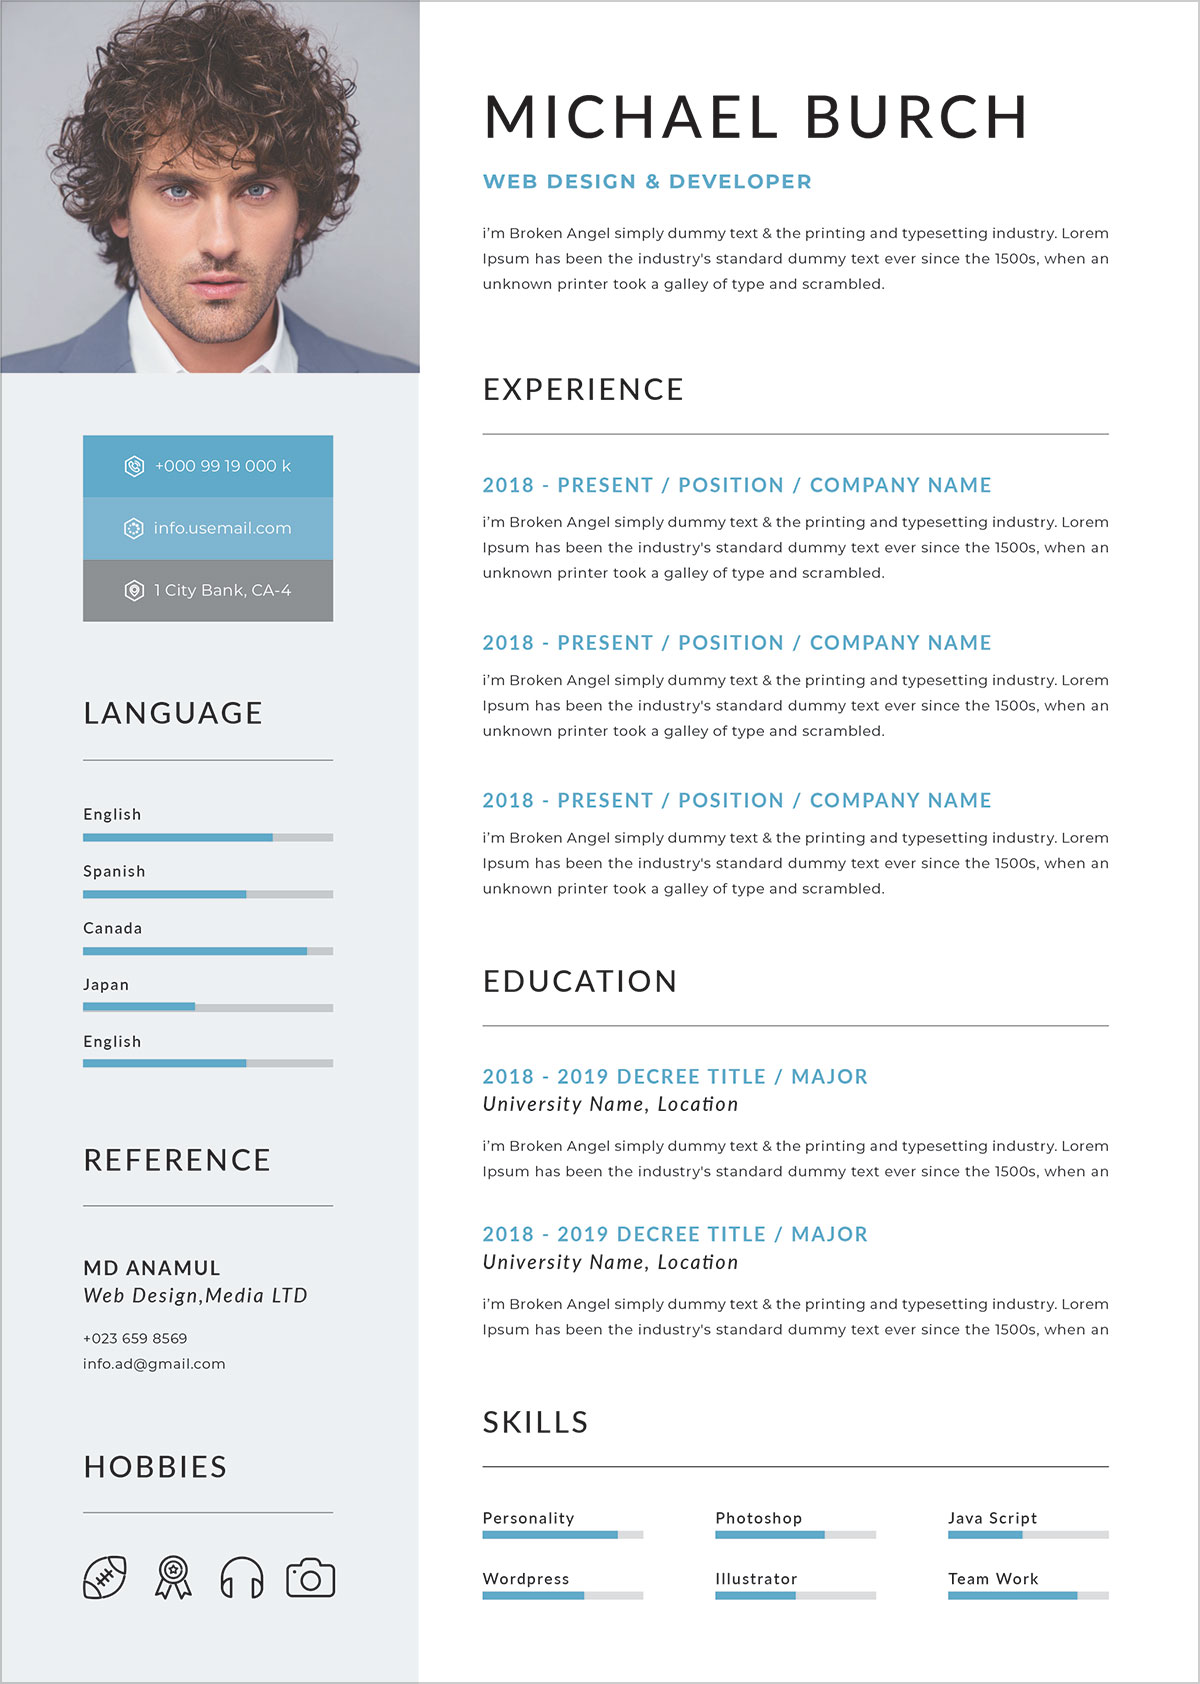 Free-Professional-Resume-Template-in-DOC-PSD-&-Ai-Format- (3)